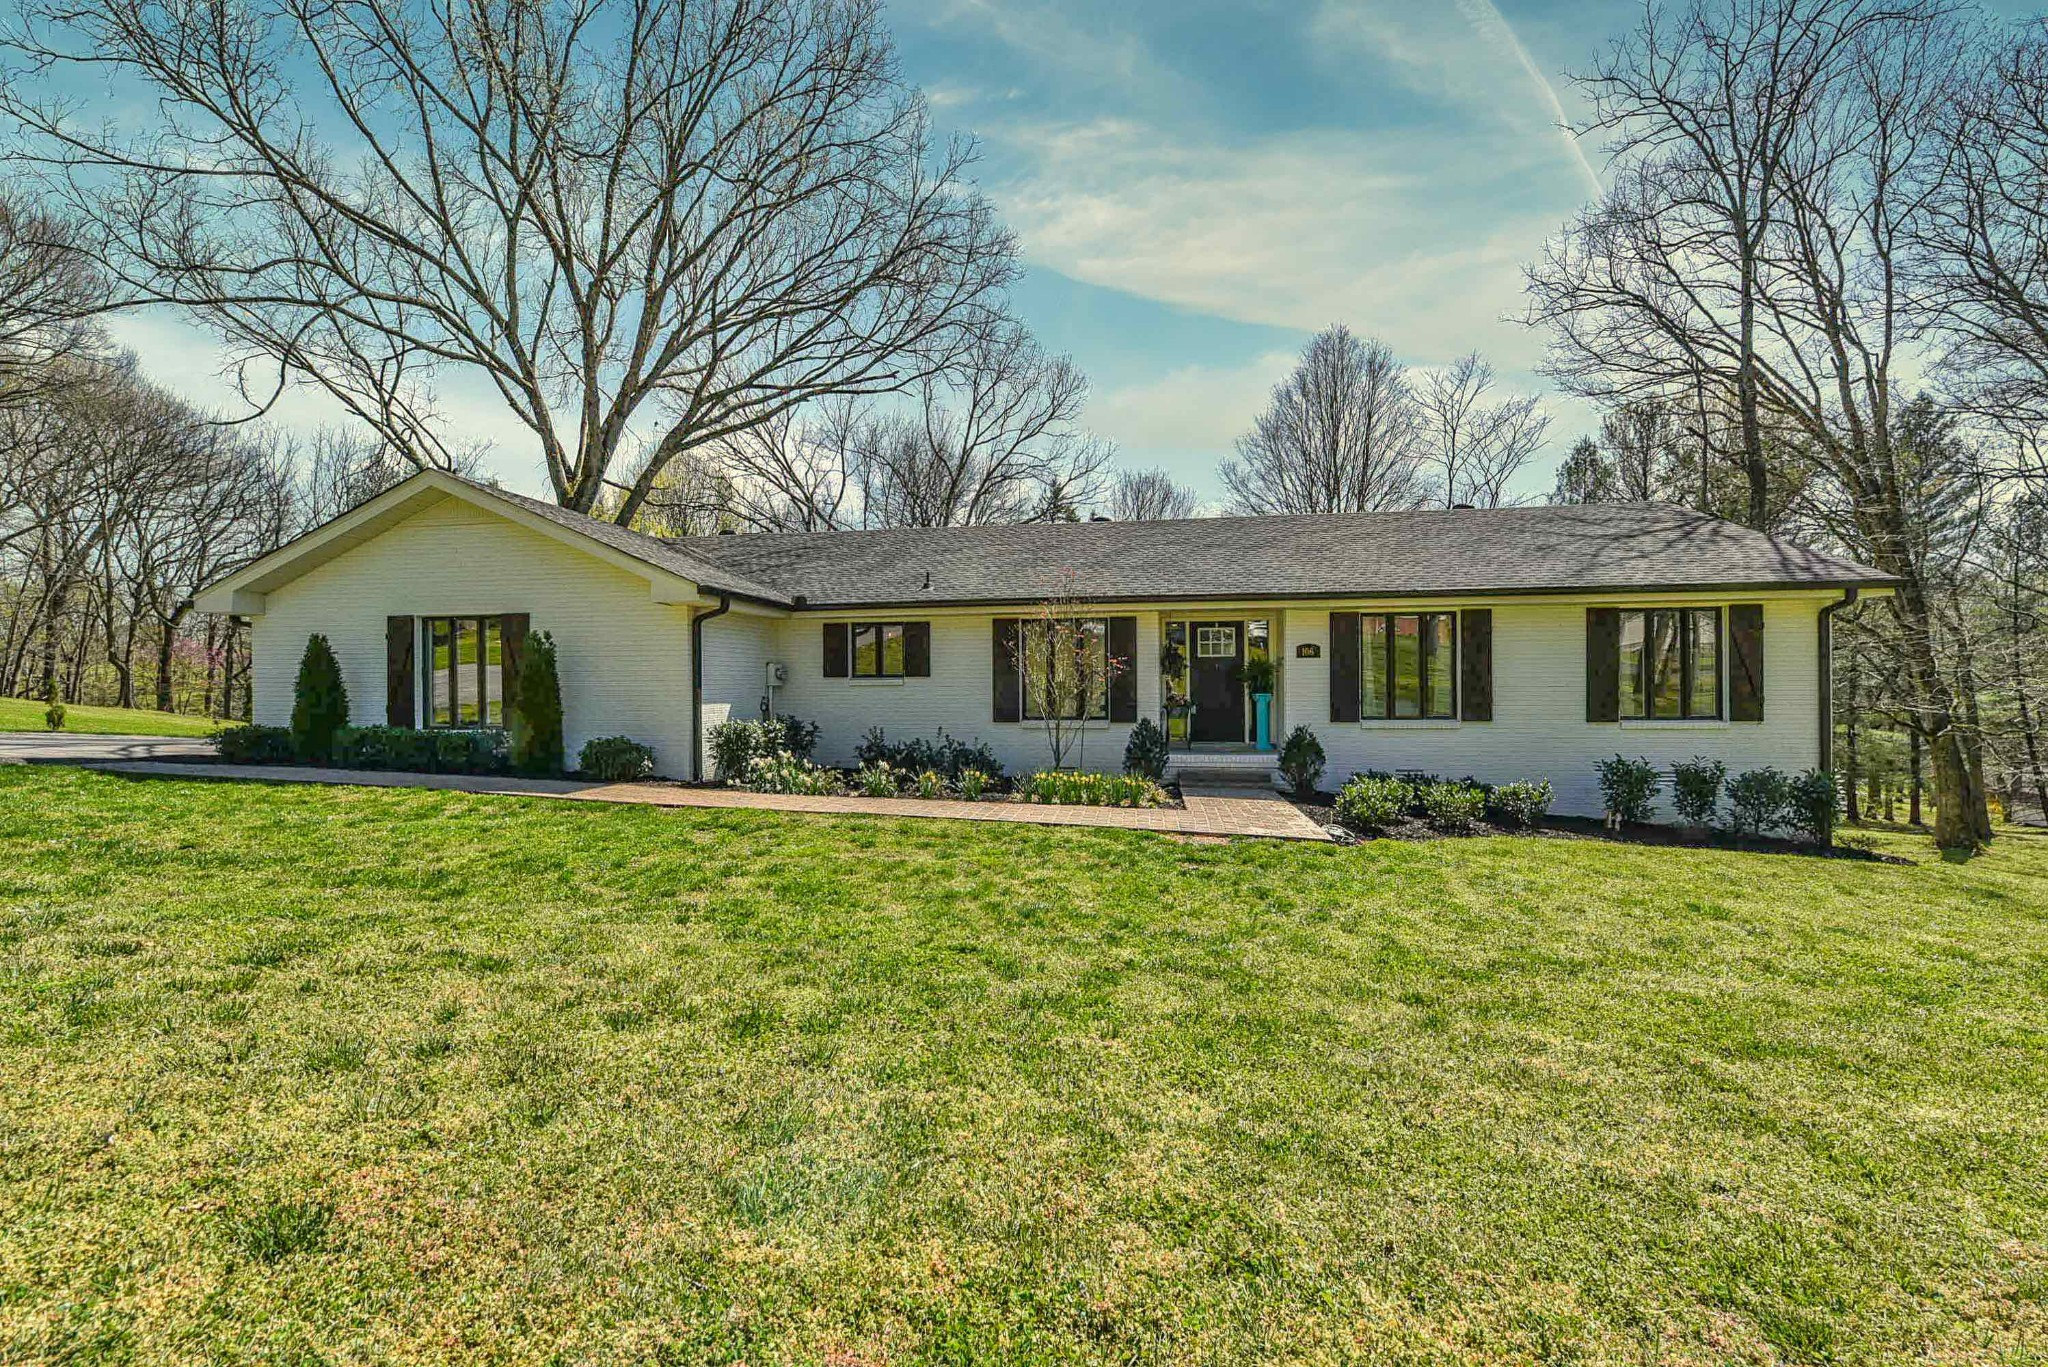 Beech School Dist. close to H'ville Indian Lake shopping, 30 minutes to Nashville. Remodeled 2yrs ago, roof, HVAC, drive, cabinets, granite, induction range top, flooring, landscaping, fence, large  deck, stainless appliances, smart lighting outside, 1 Acre+, awesome laundry rm. established neighborhood, located in cul-de-sac3 BEDROOMS AND OFFICE  Area beneath house used as workshop.